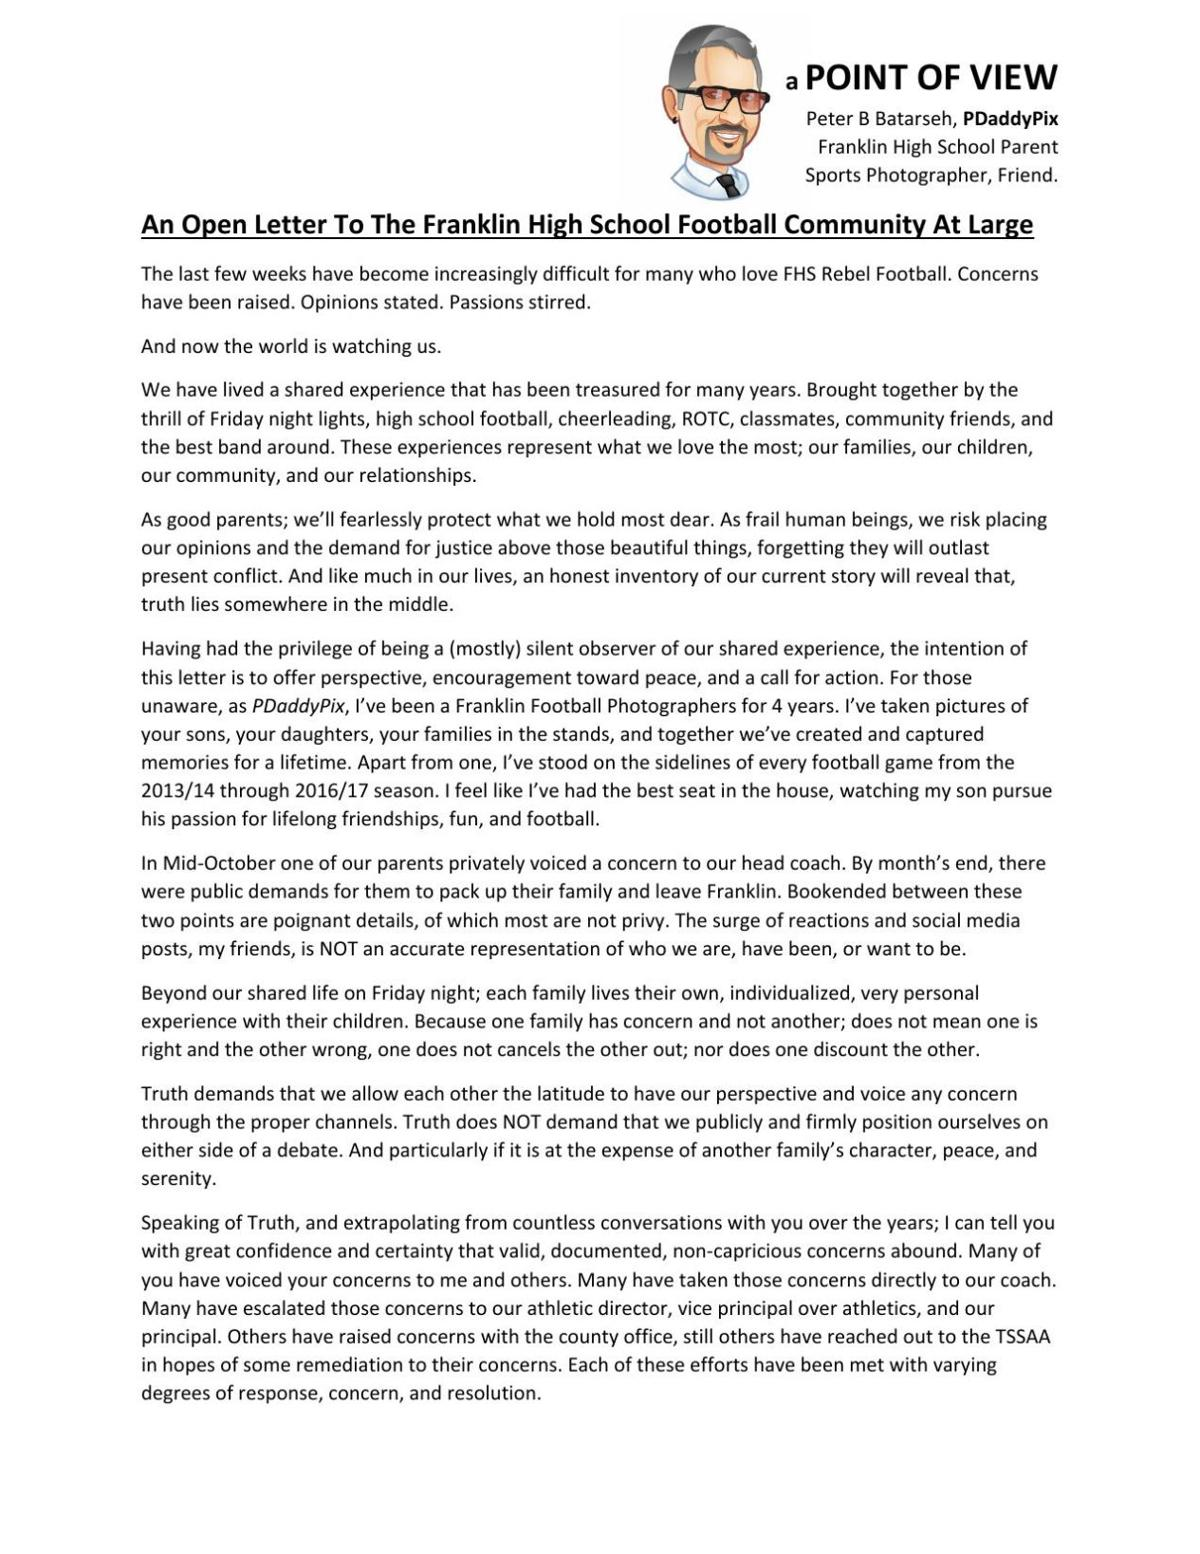 Letter to the Editor An Open Letter to the Franklin High School